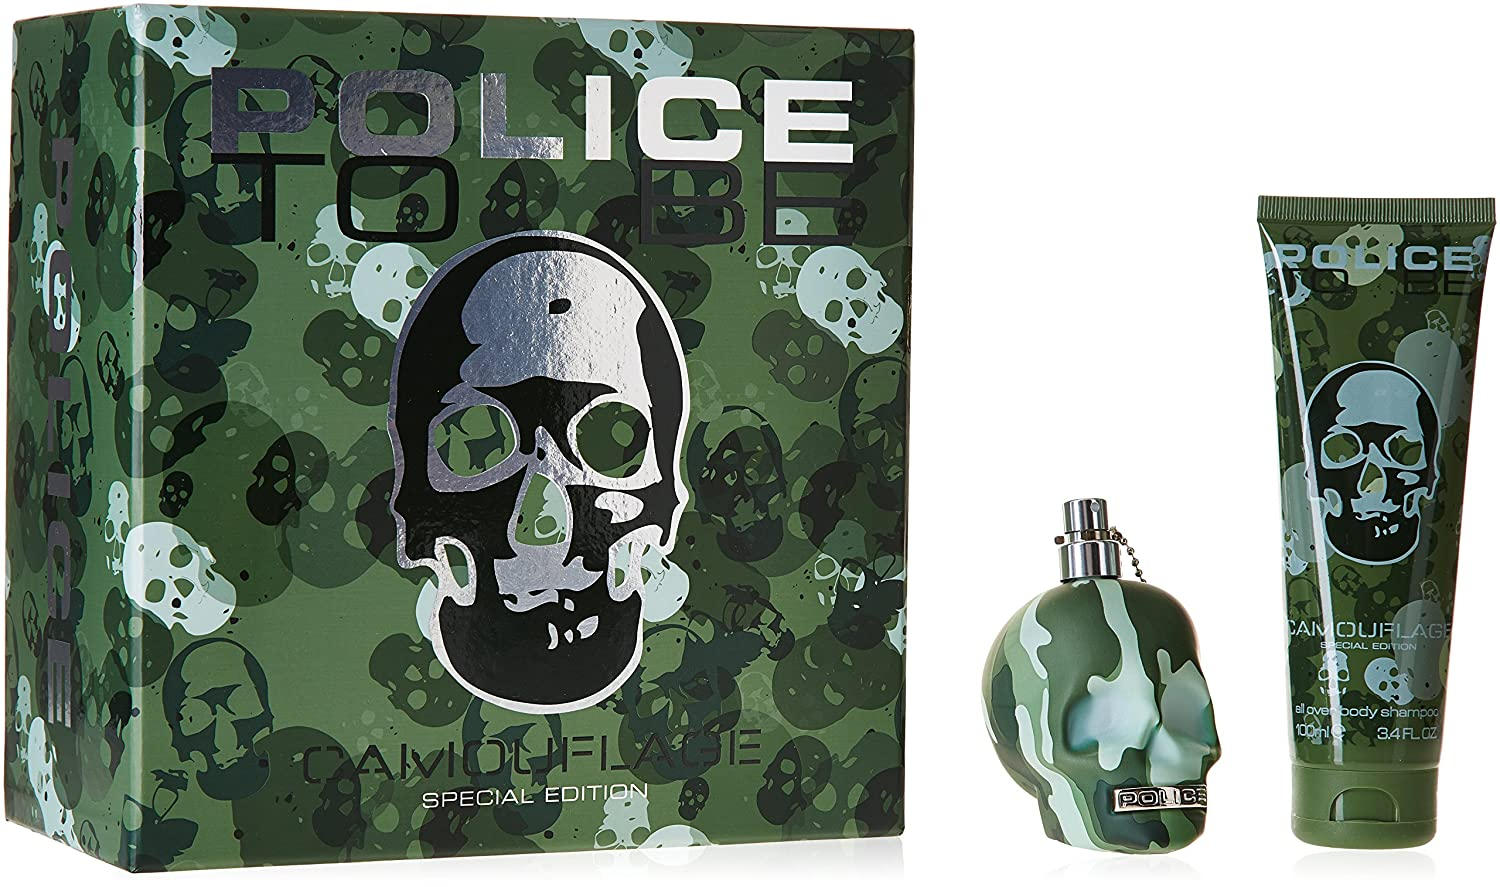 Police To Be Coffret Camouflage pour Homme - Parfum 75 ml + Gel Douche Cheveux/Corps 75 ml